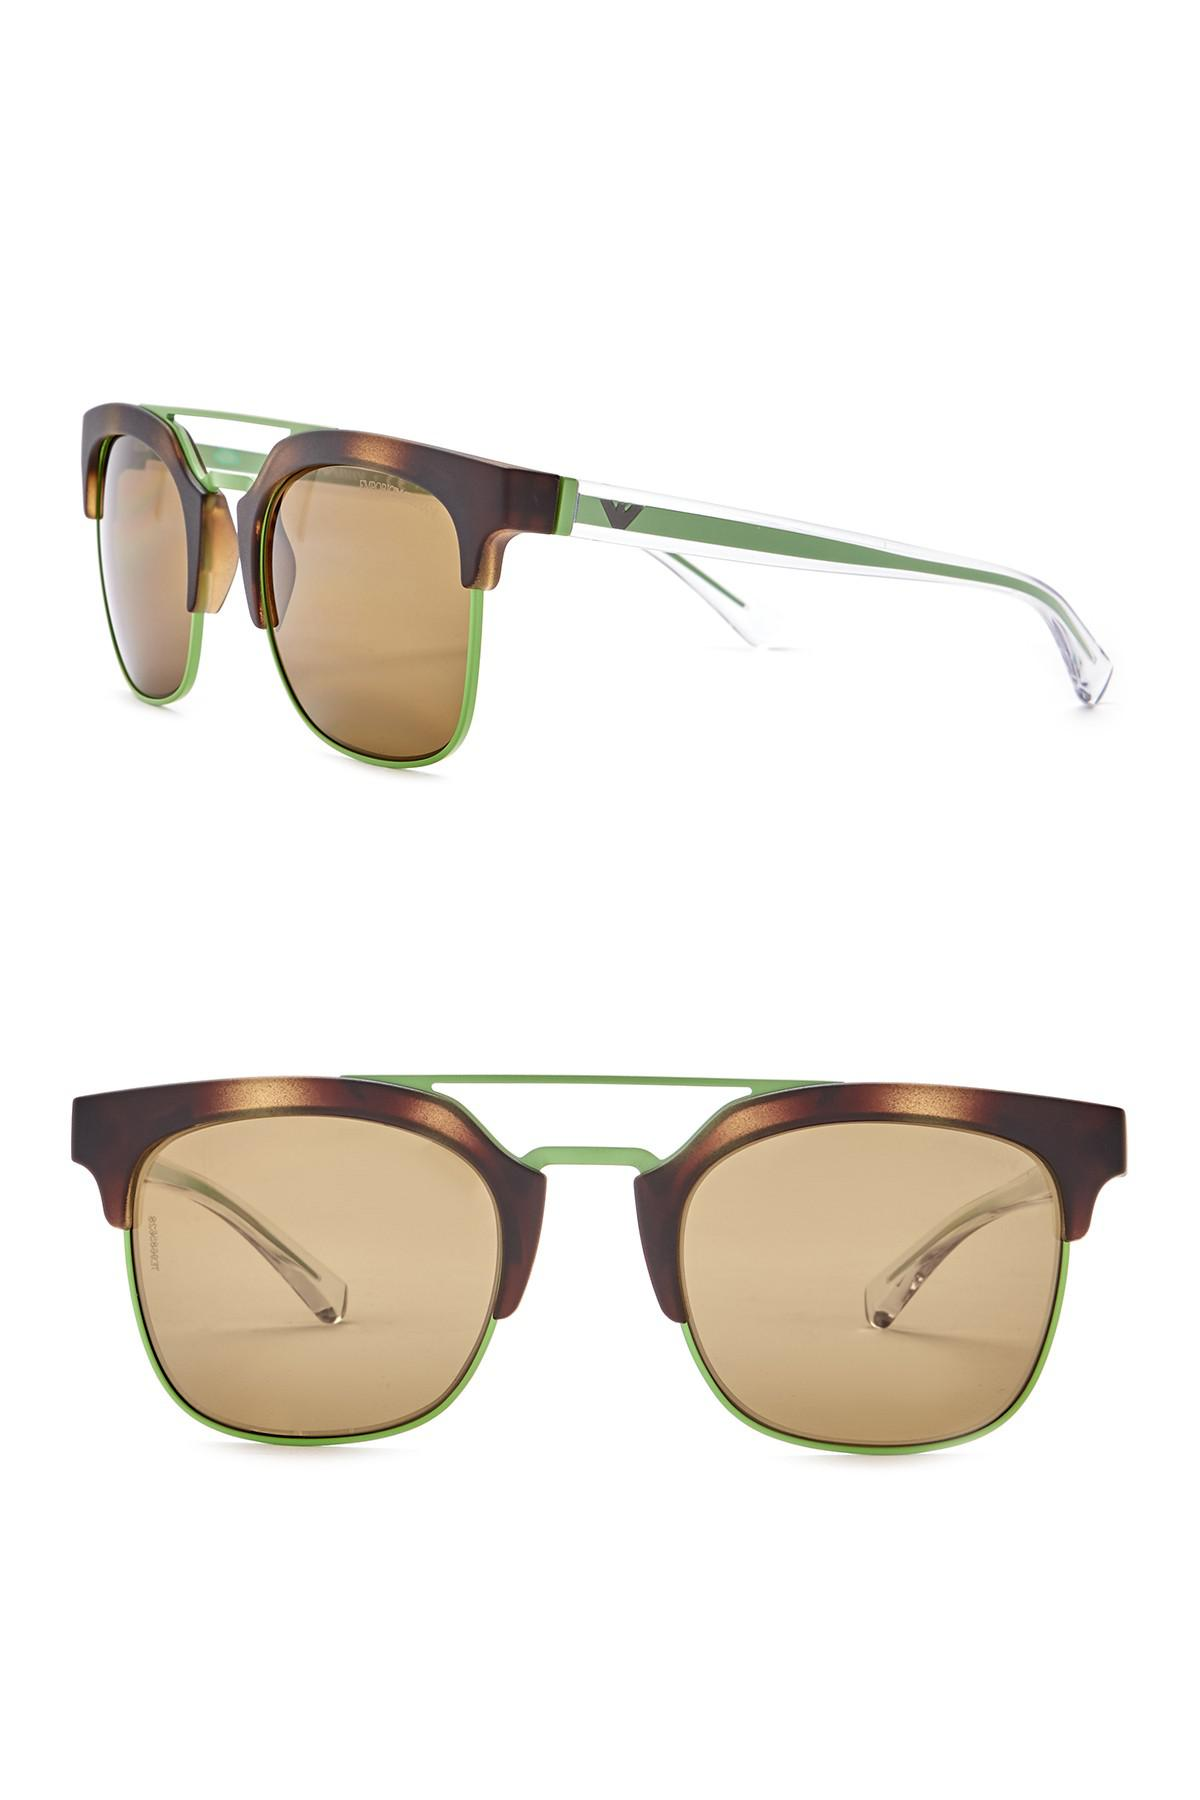 2189b9442d9 Emporio Armani Clubmaster 52mm Metal Frame Sunglasses for Men - Lyst